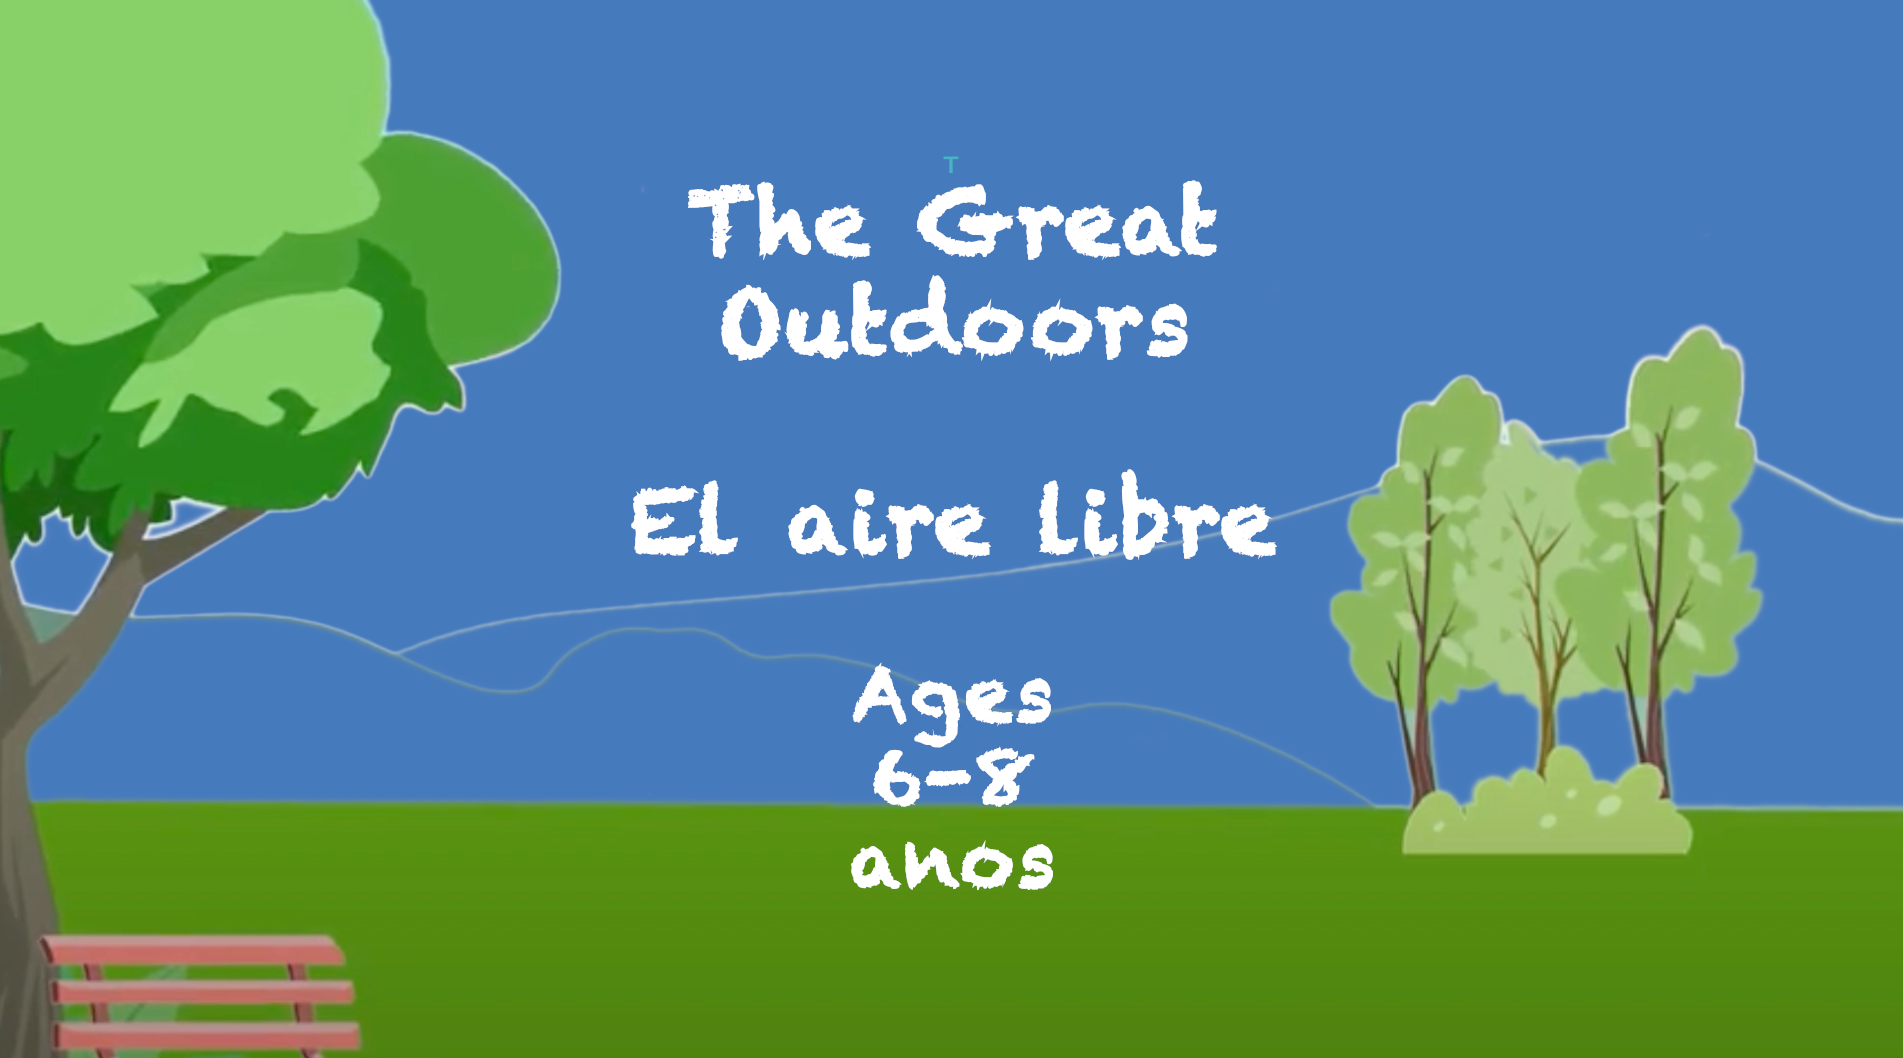 Reading in the Great Outdoors for 6-8 year olds